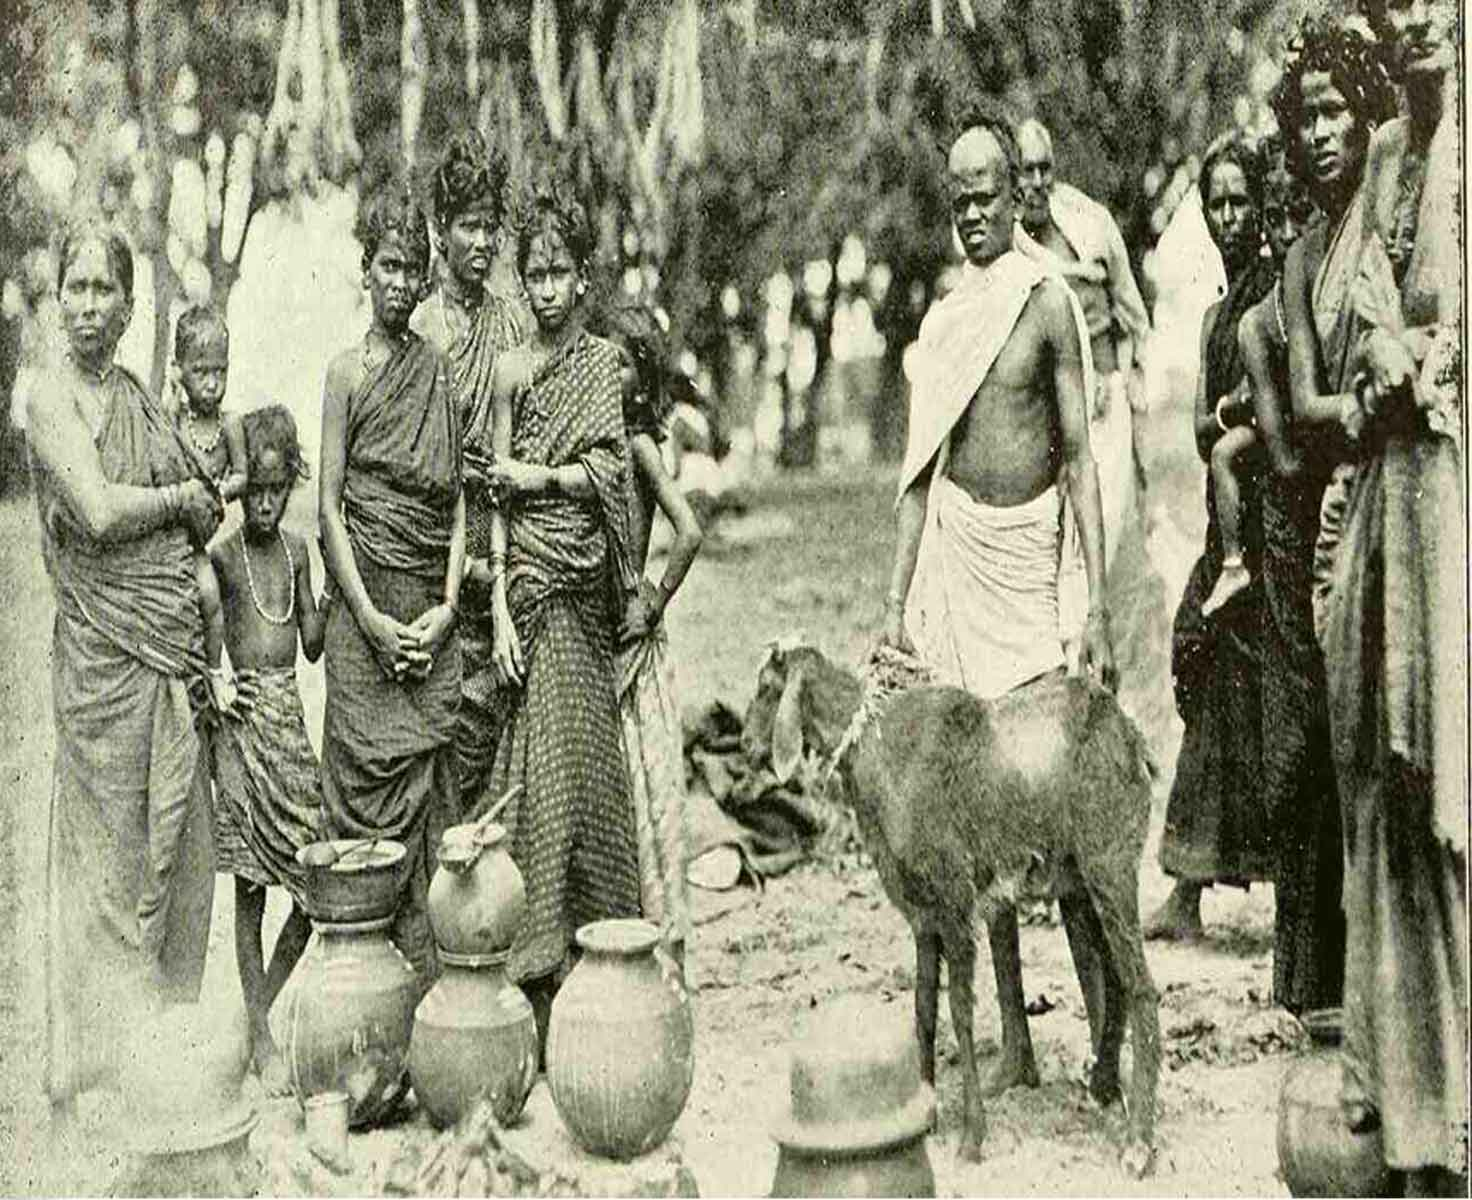 Development of Nomadic Tribes and Denotified Tribes